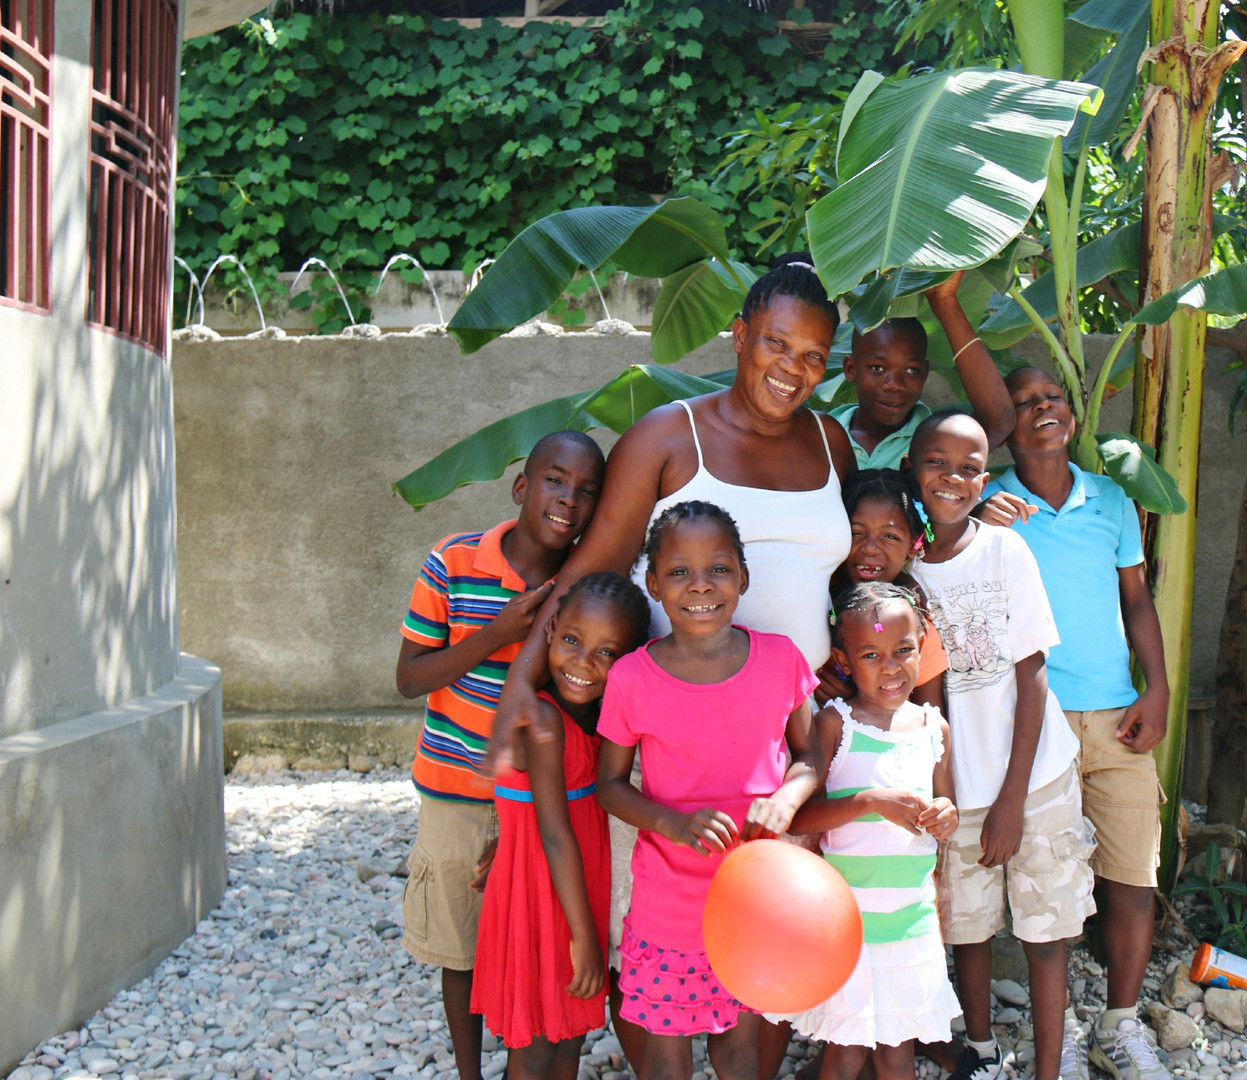 Haiti%20-%20Family%20Home%20_edited.jpg